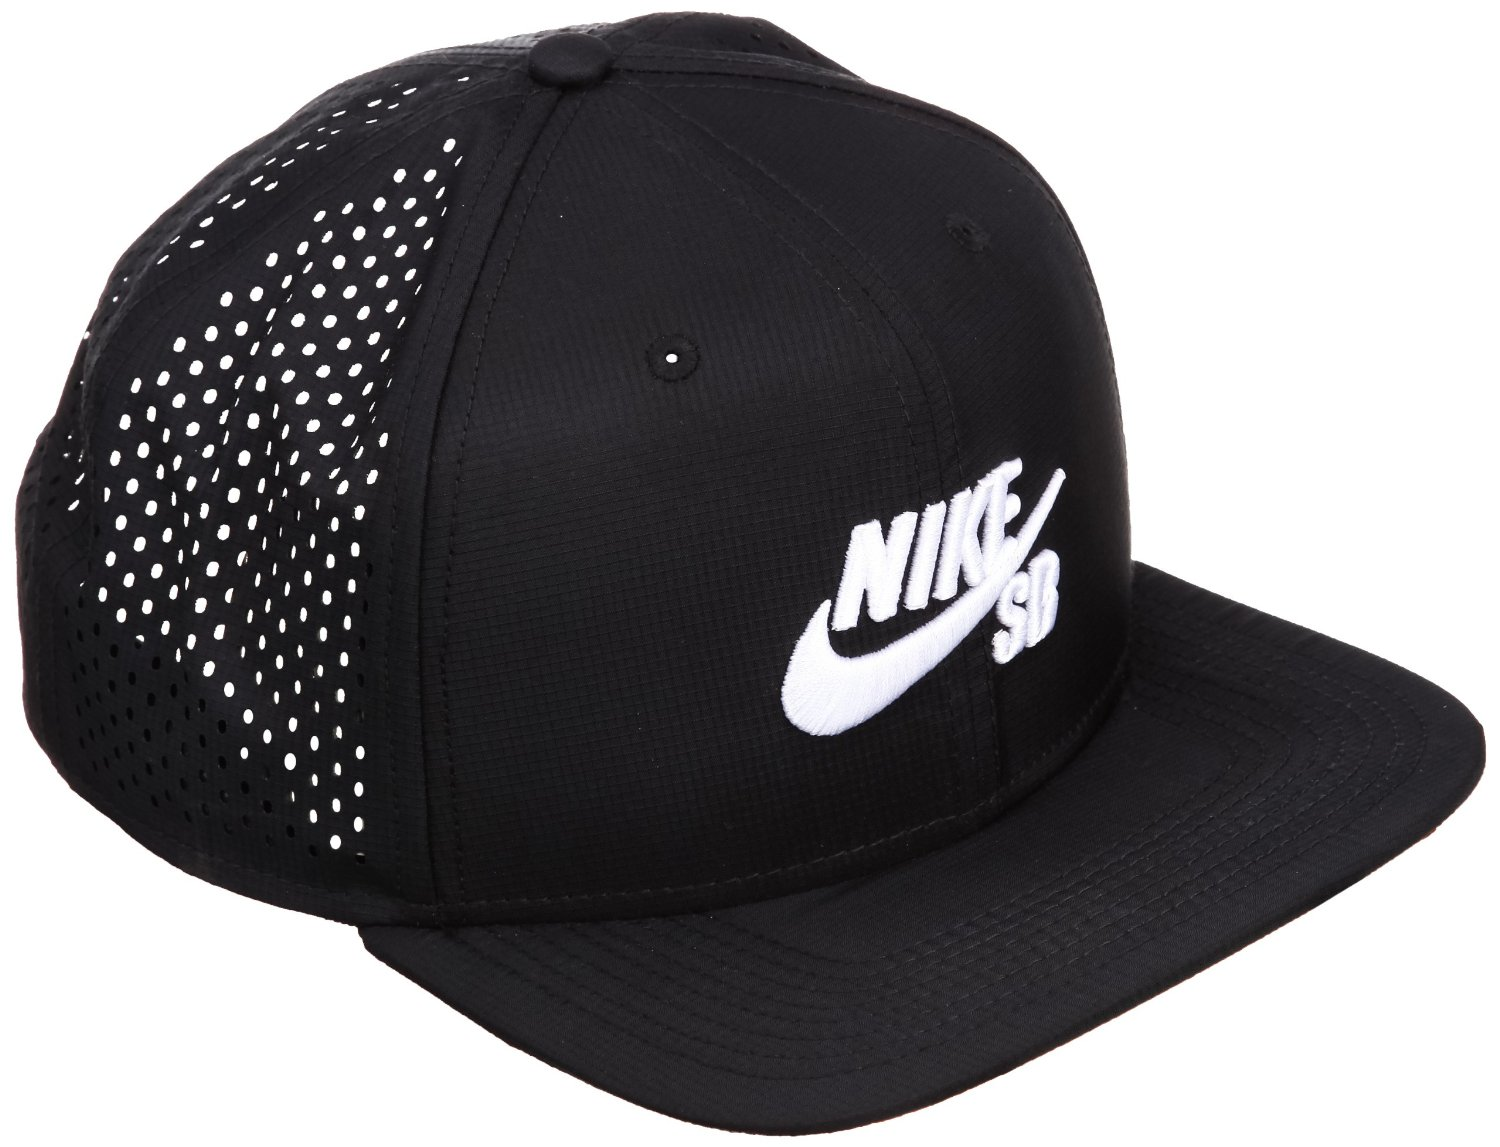 Acquista cappello nike cr7 - OFF43% sconti 791dda4db9fa